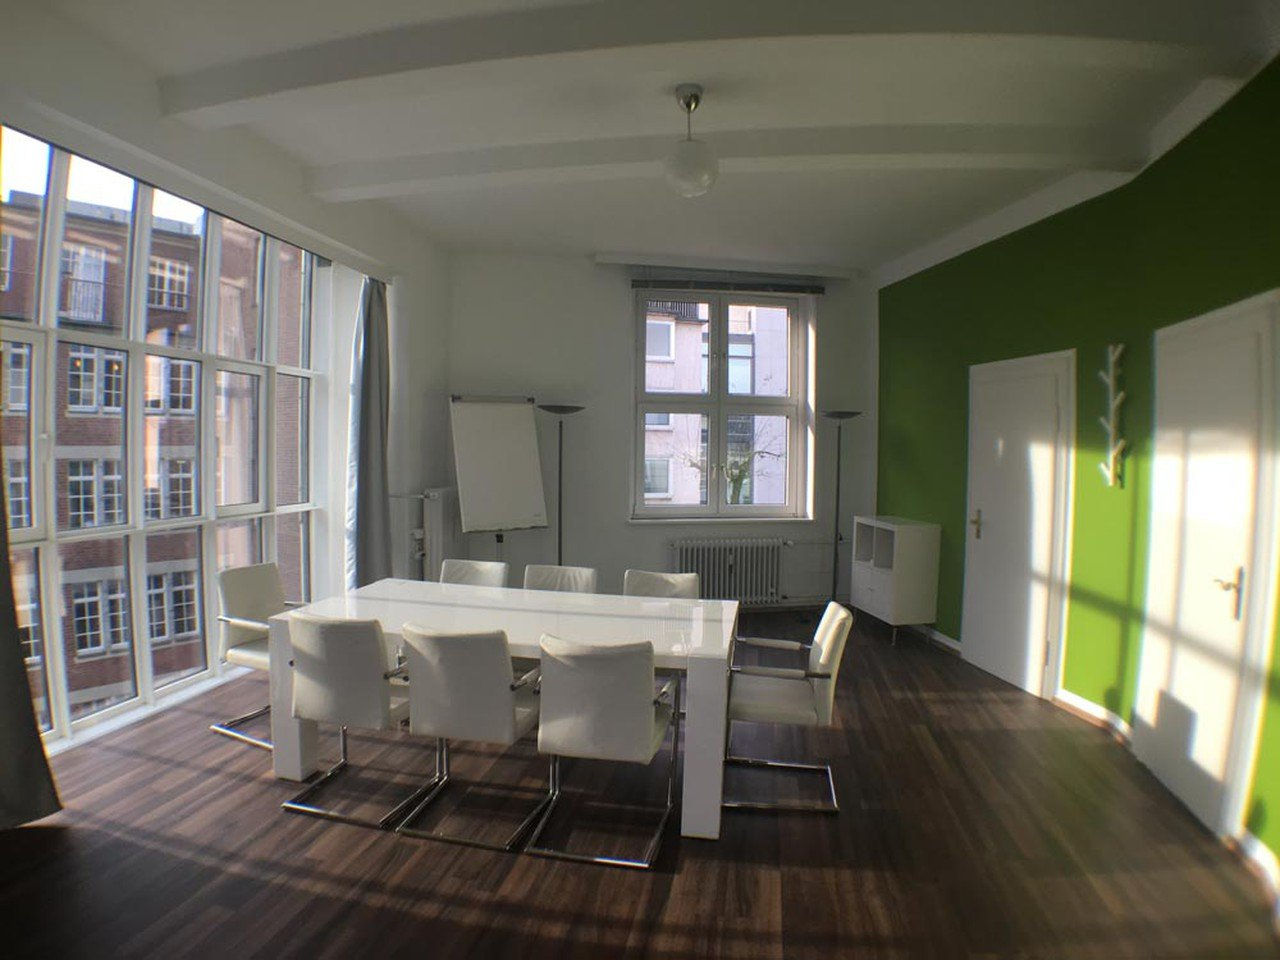 Hannover conference rooms Meeting room Desk2Rent Uihlein-Haus Hannover City image 0